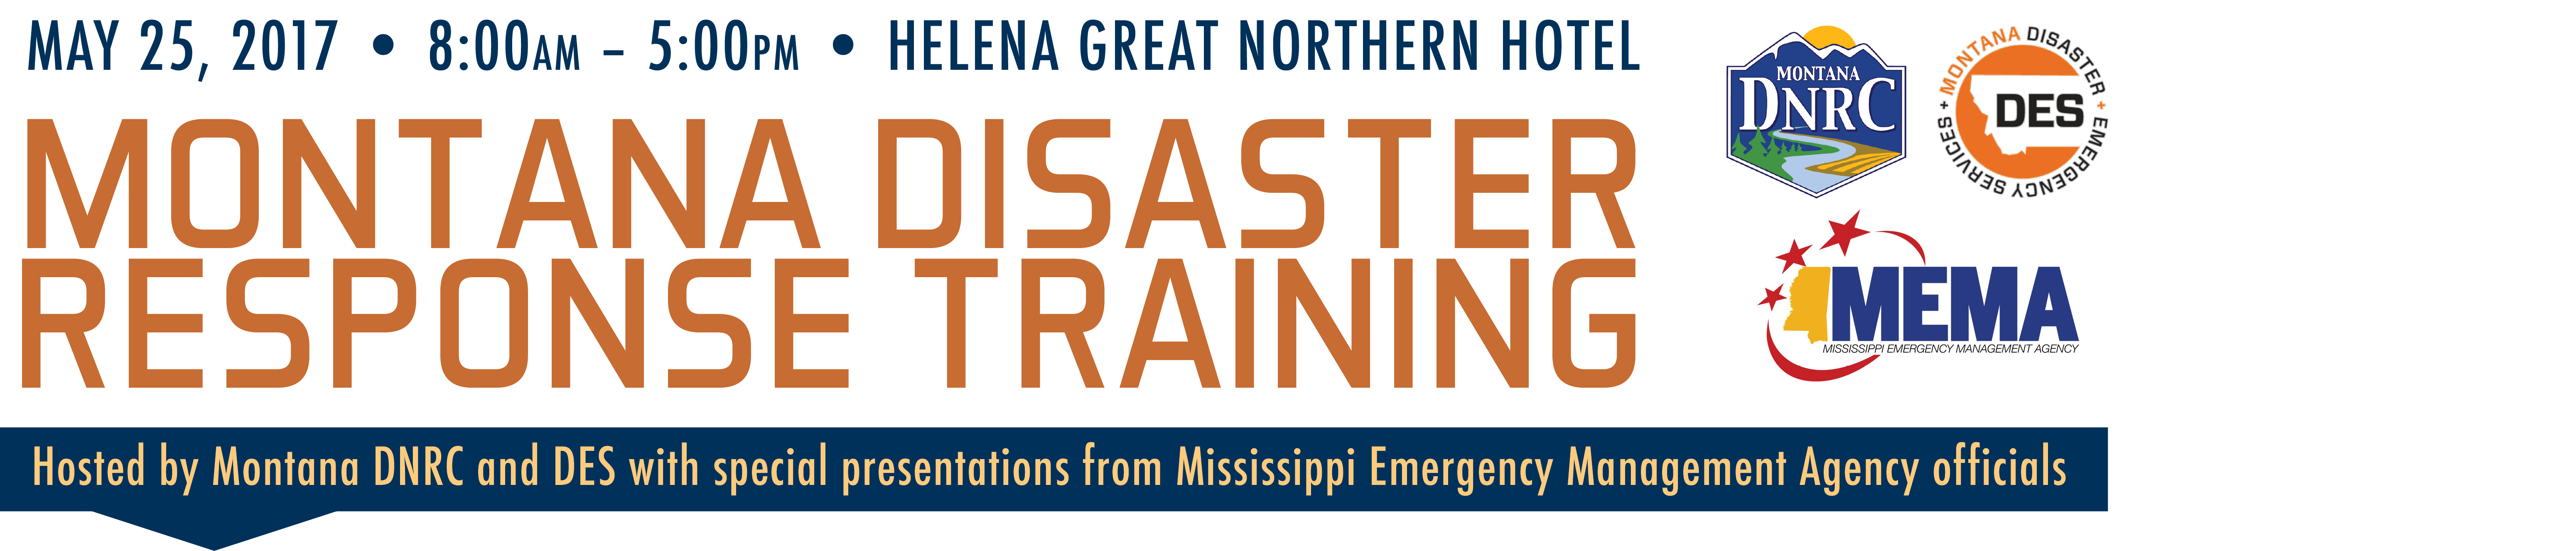 2017 Disaster Event Banner